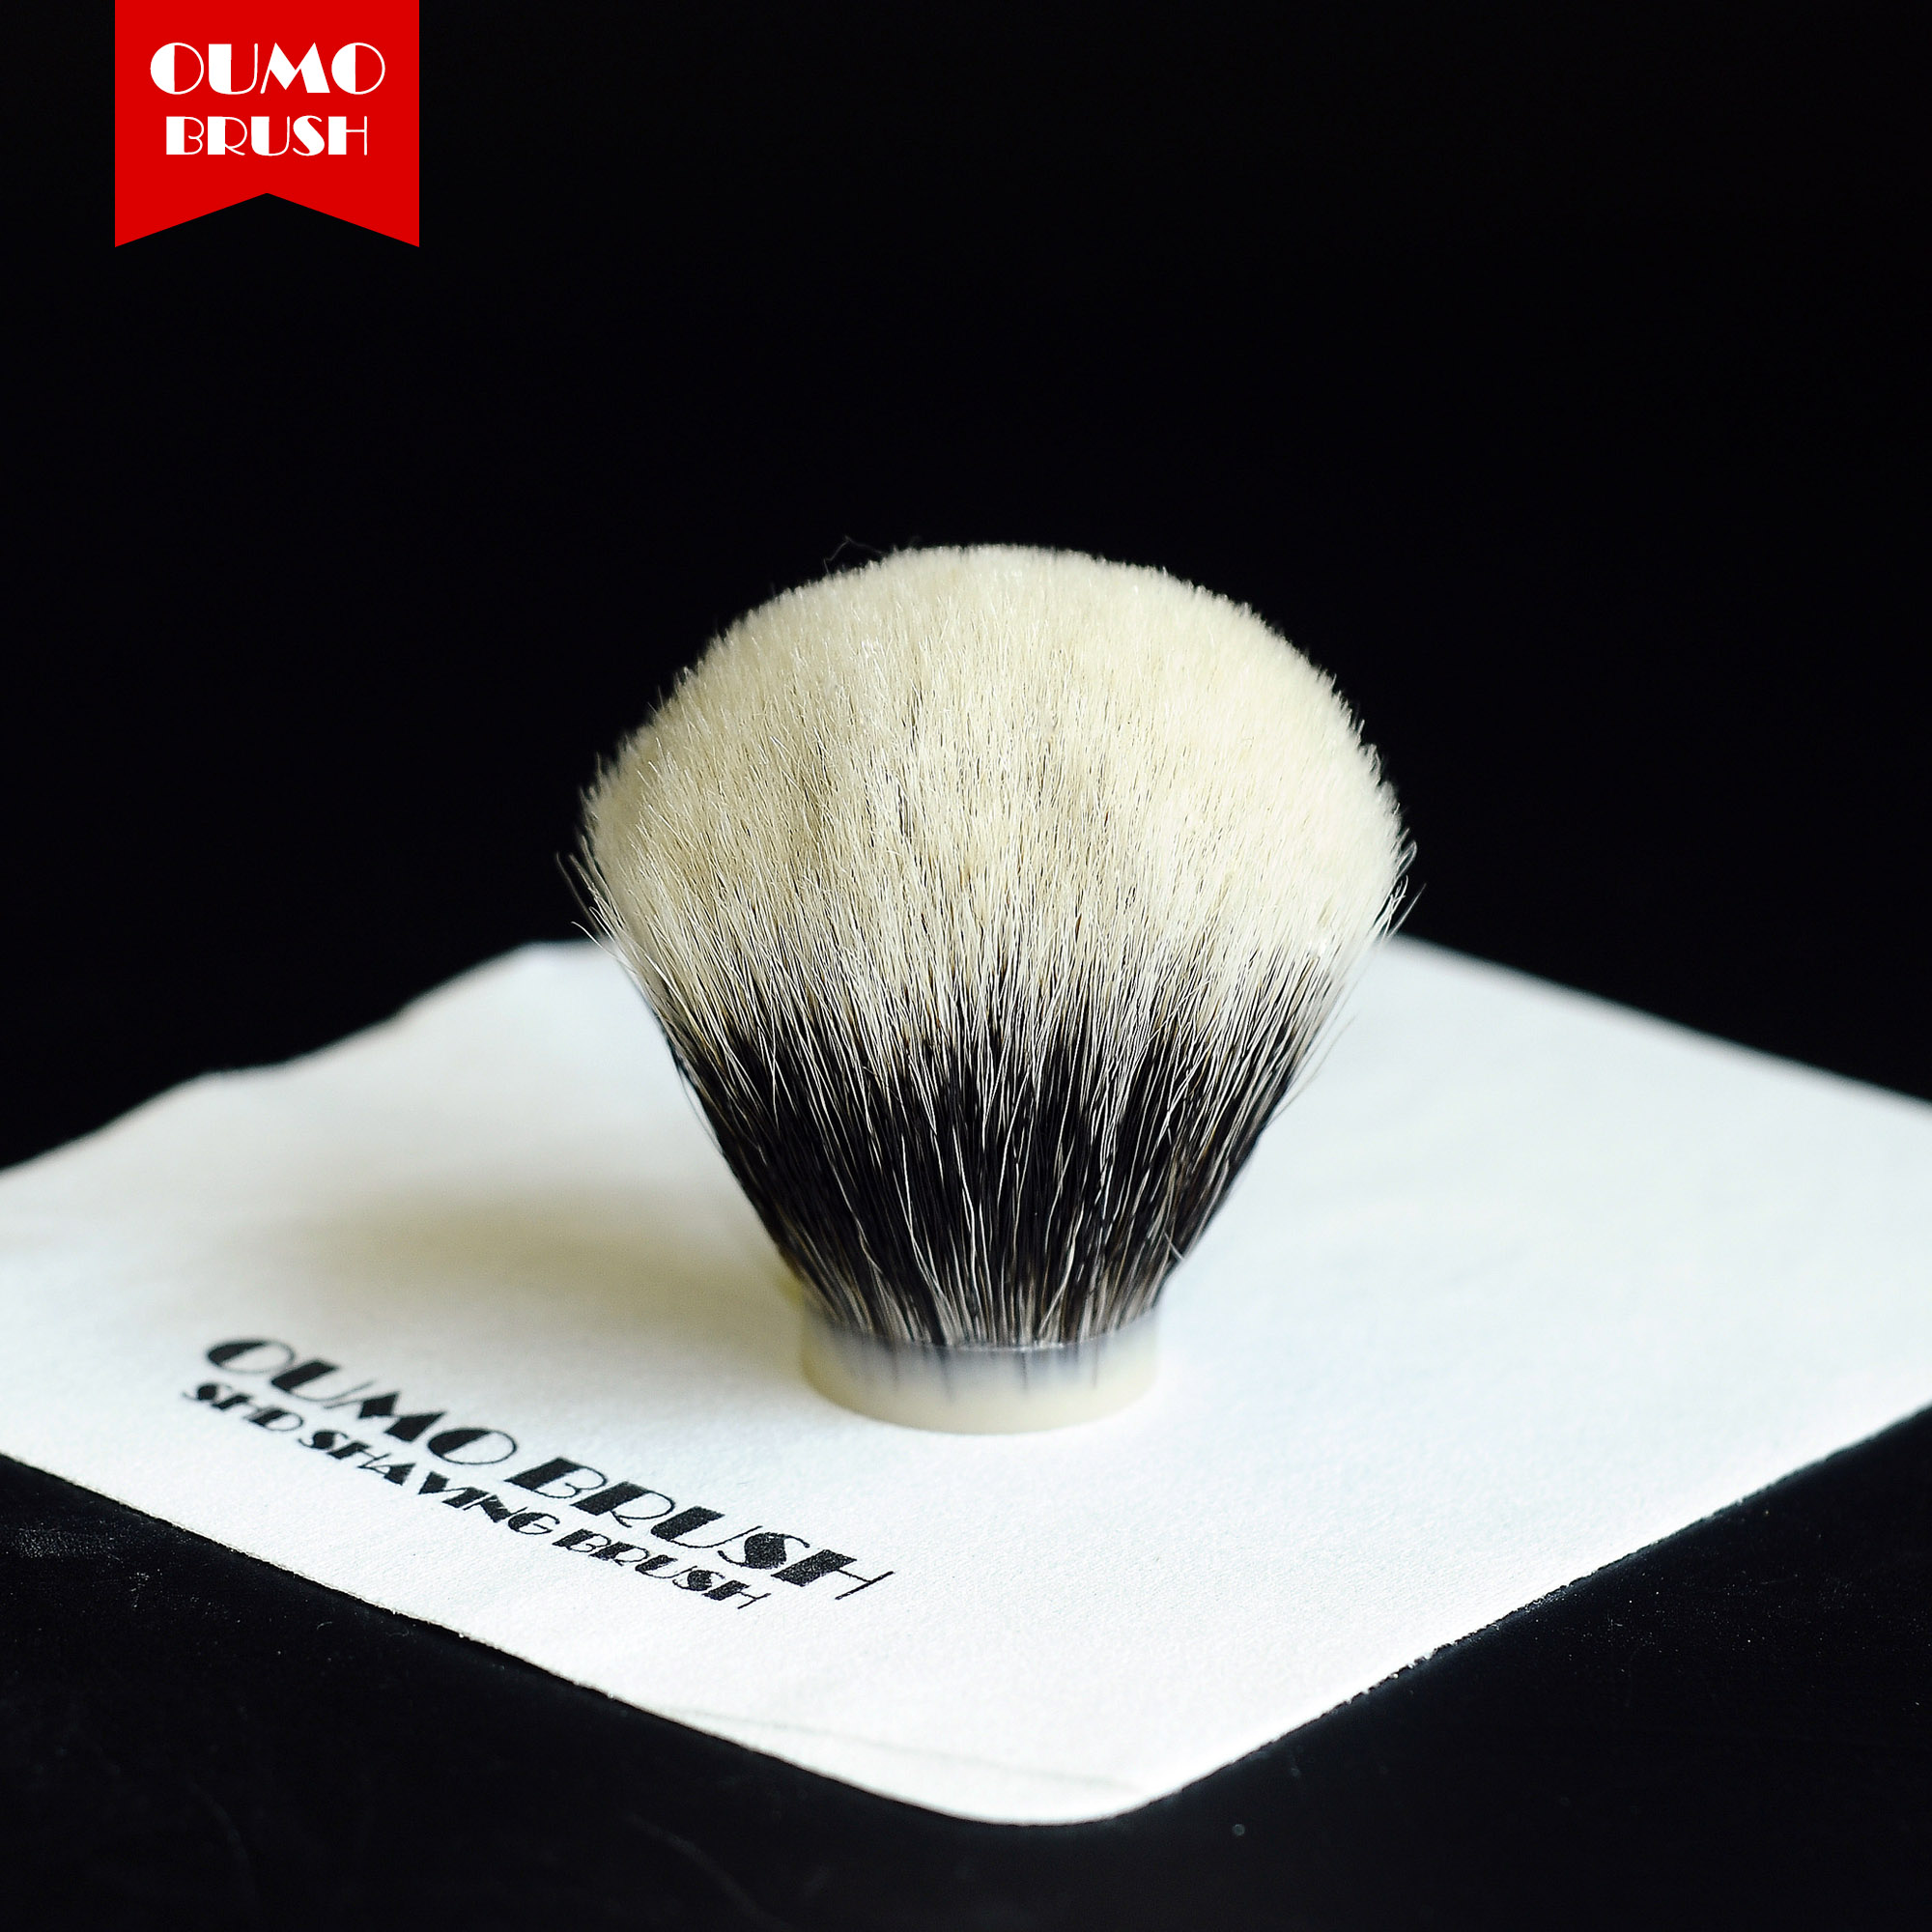 OUMO BRUSH- Bulb SHD Handmaster Finest  Badger Hair Knot Shaving Brush Knots Gel Tip